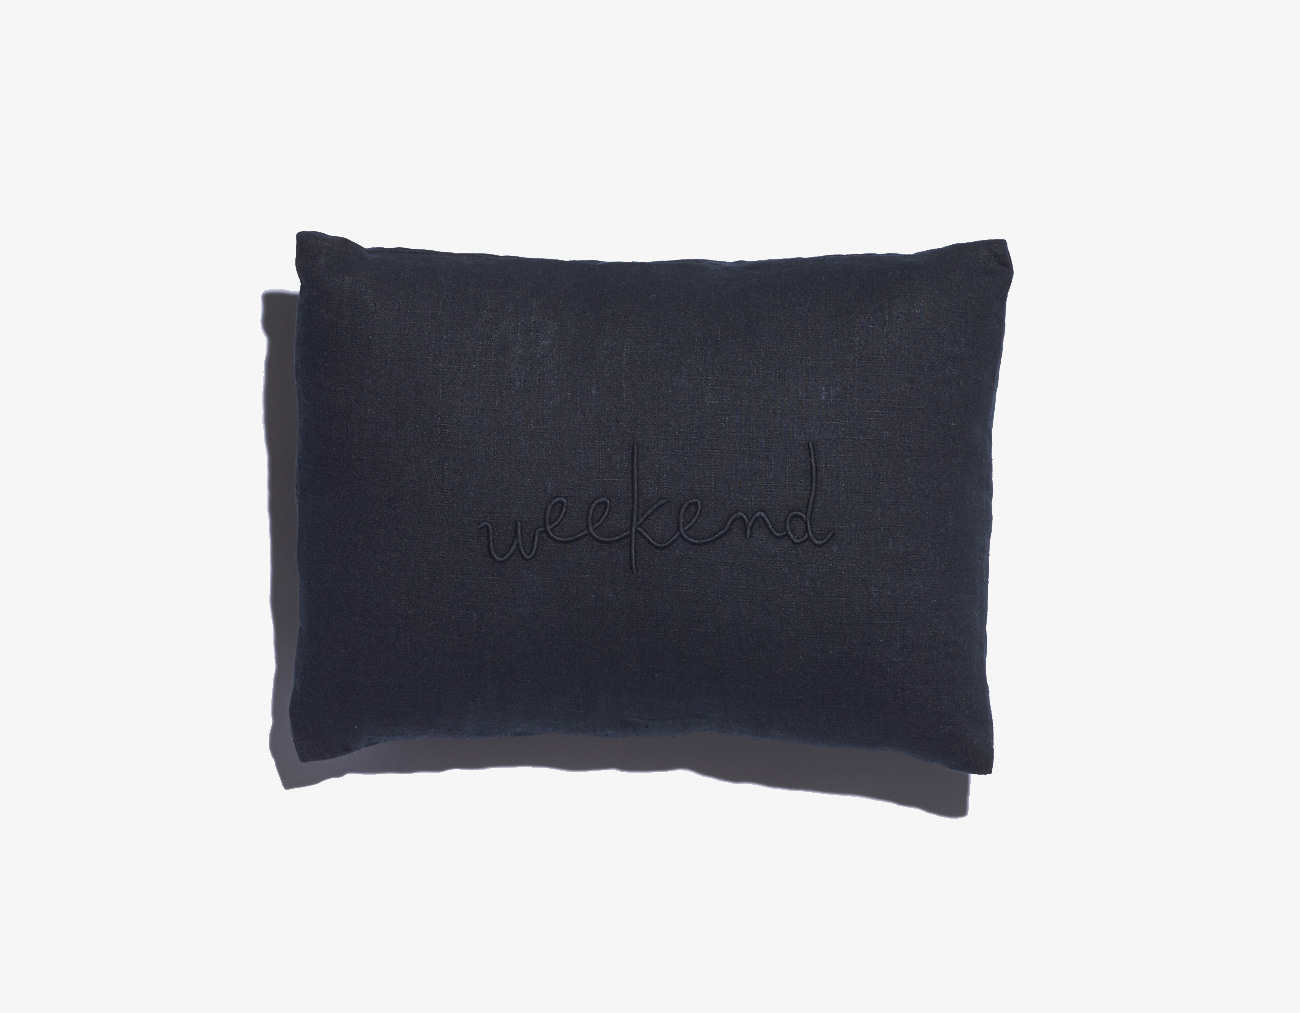 WEEKEND CUSHION-BLACK